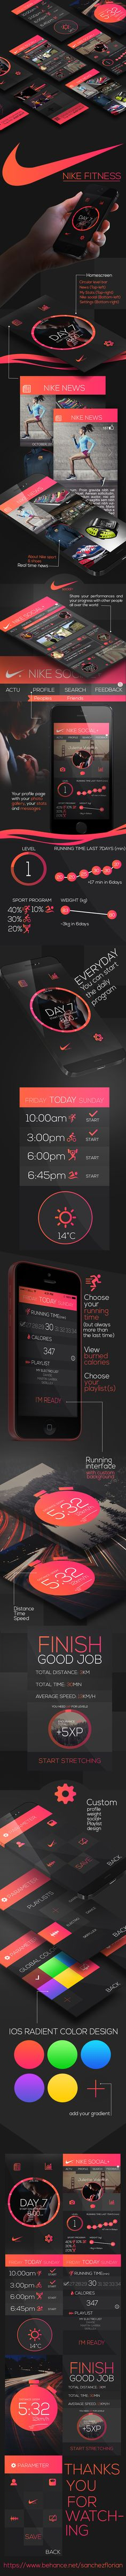 Nike Fitness Design APP by Florian Sanchez, via Behance